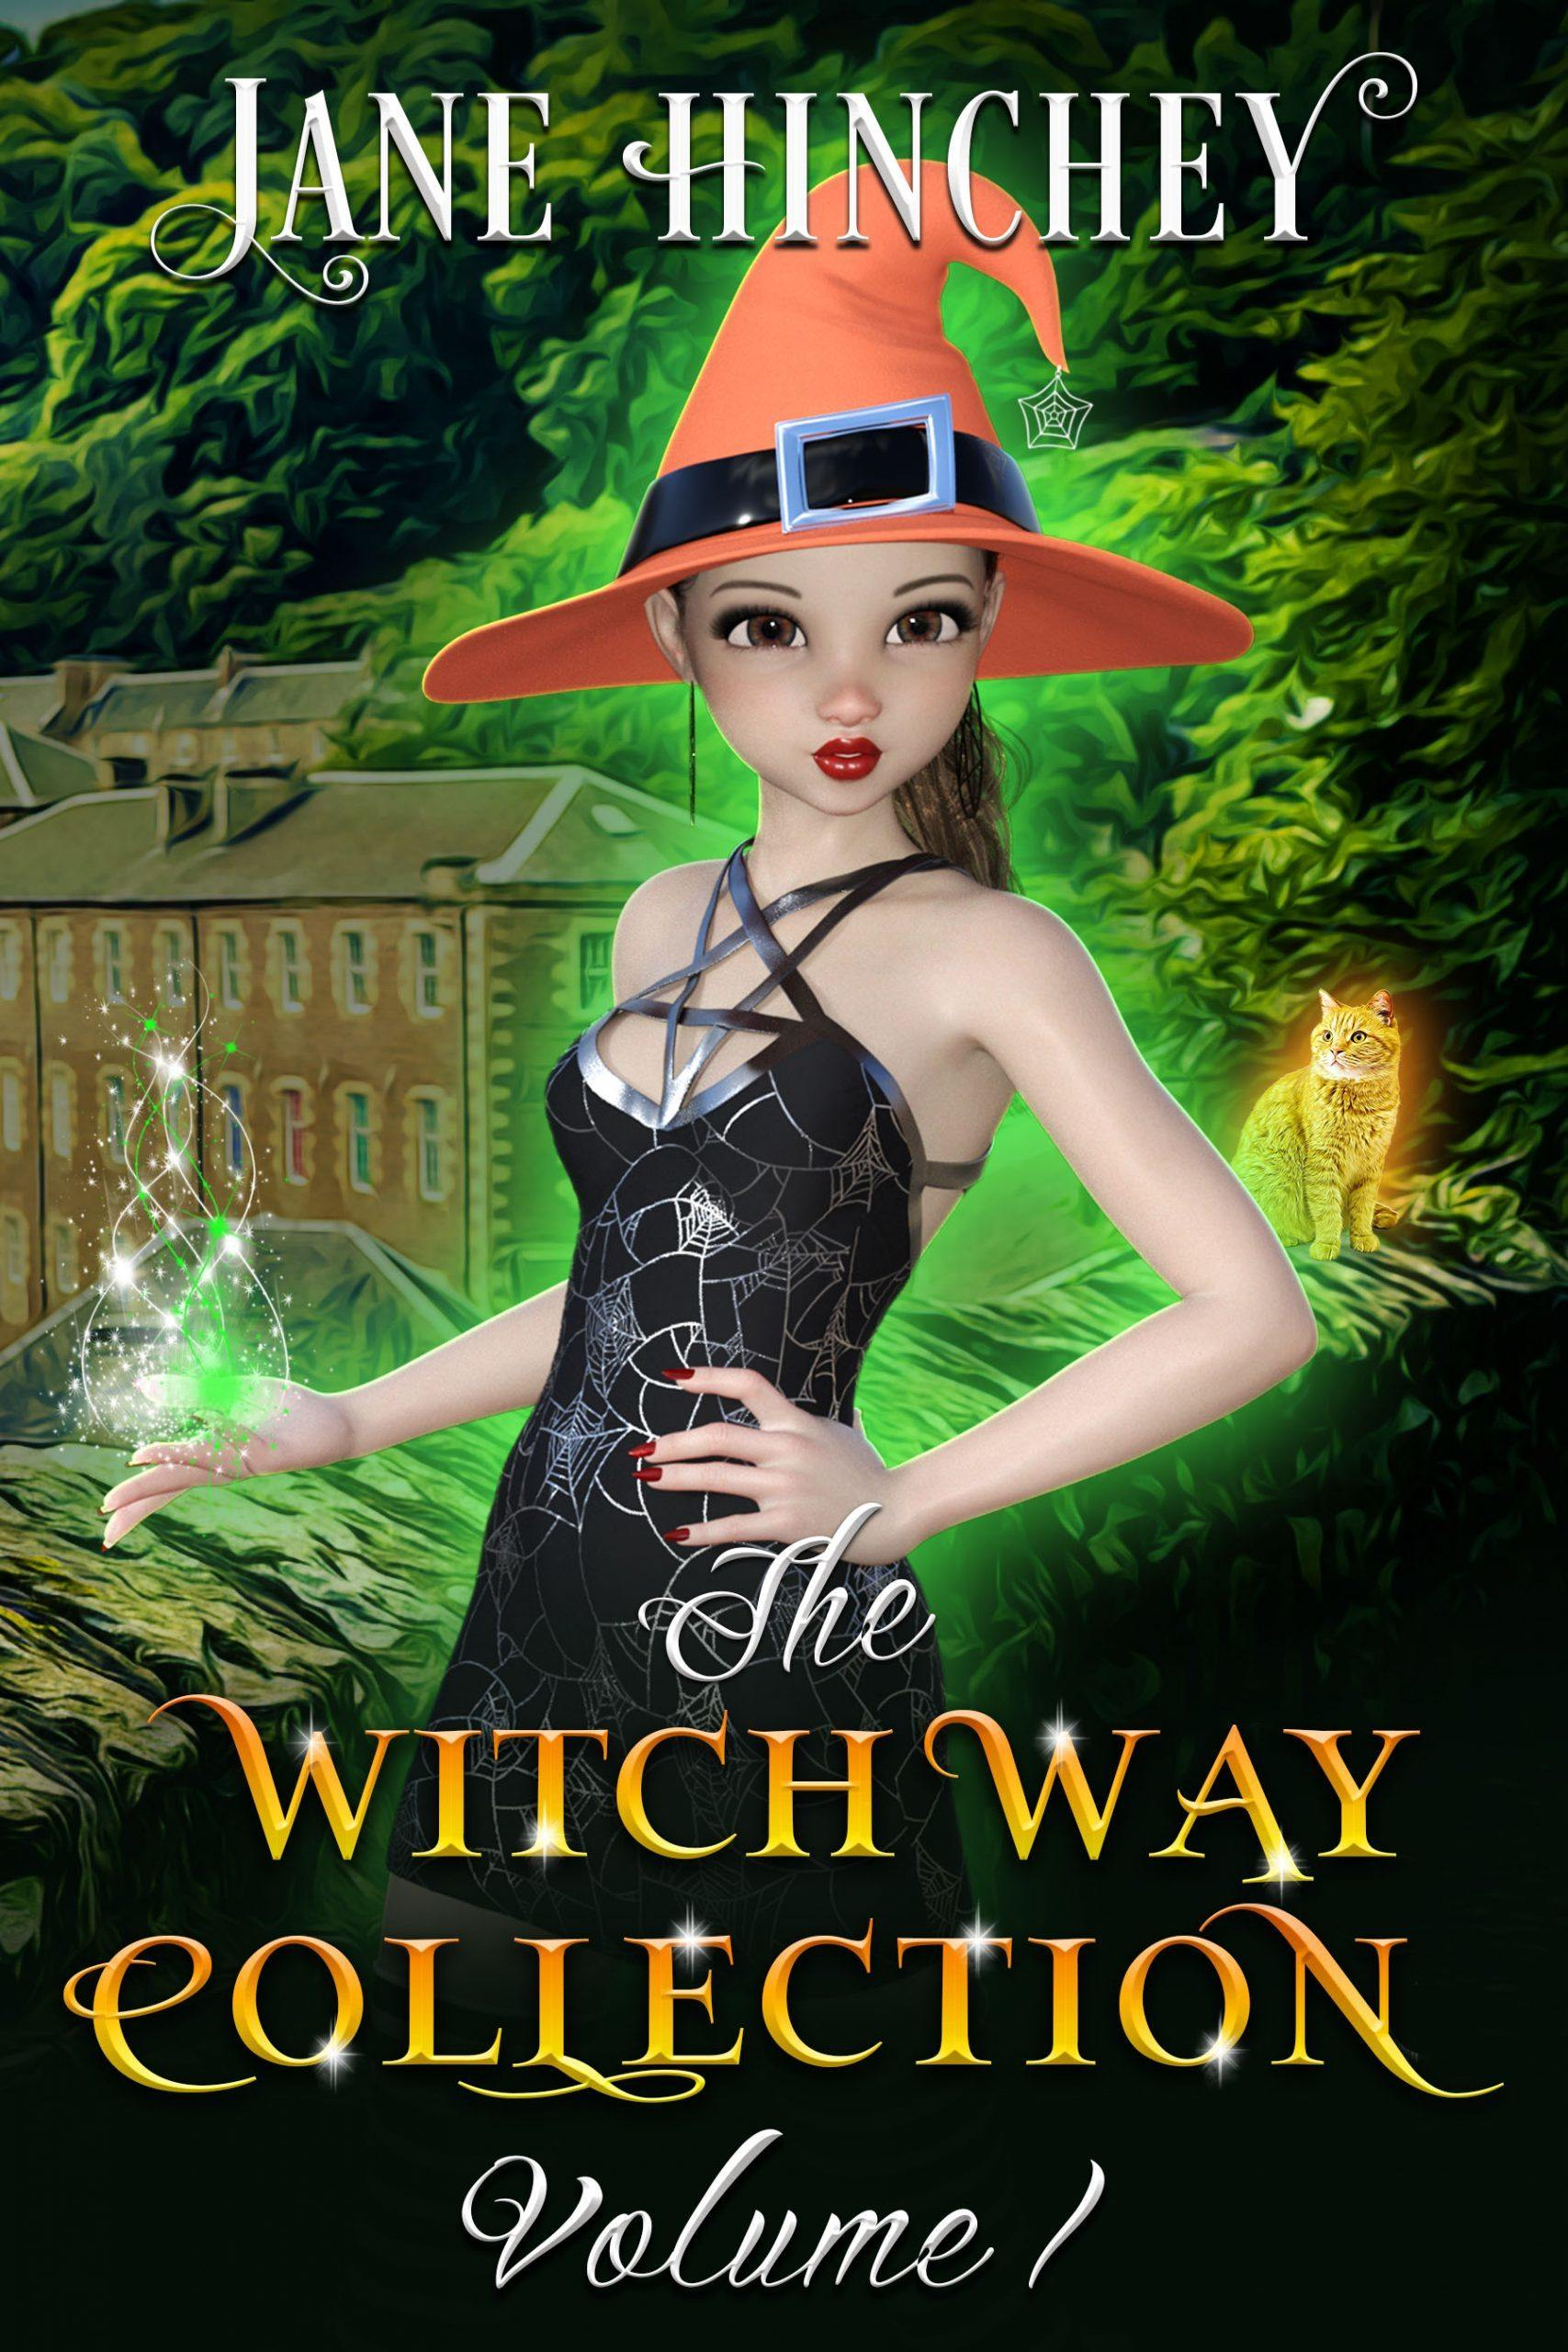 Books 1-3, the Witch Way Series